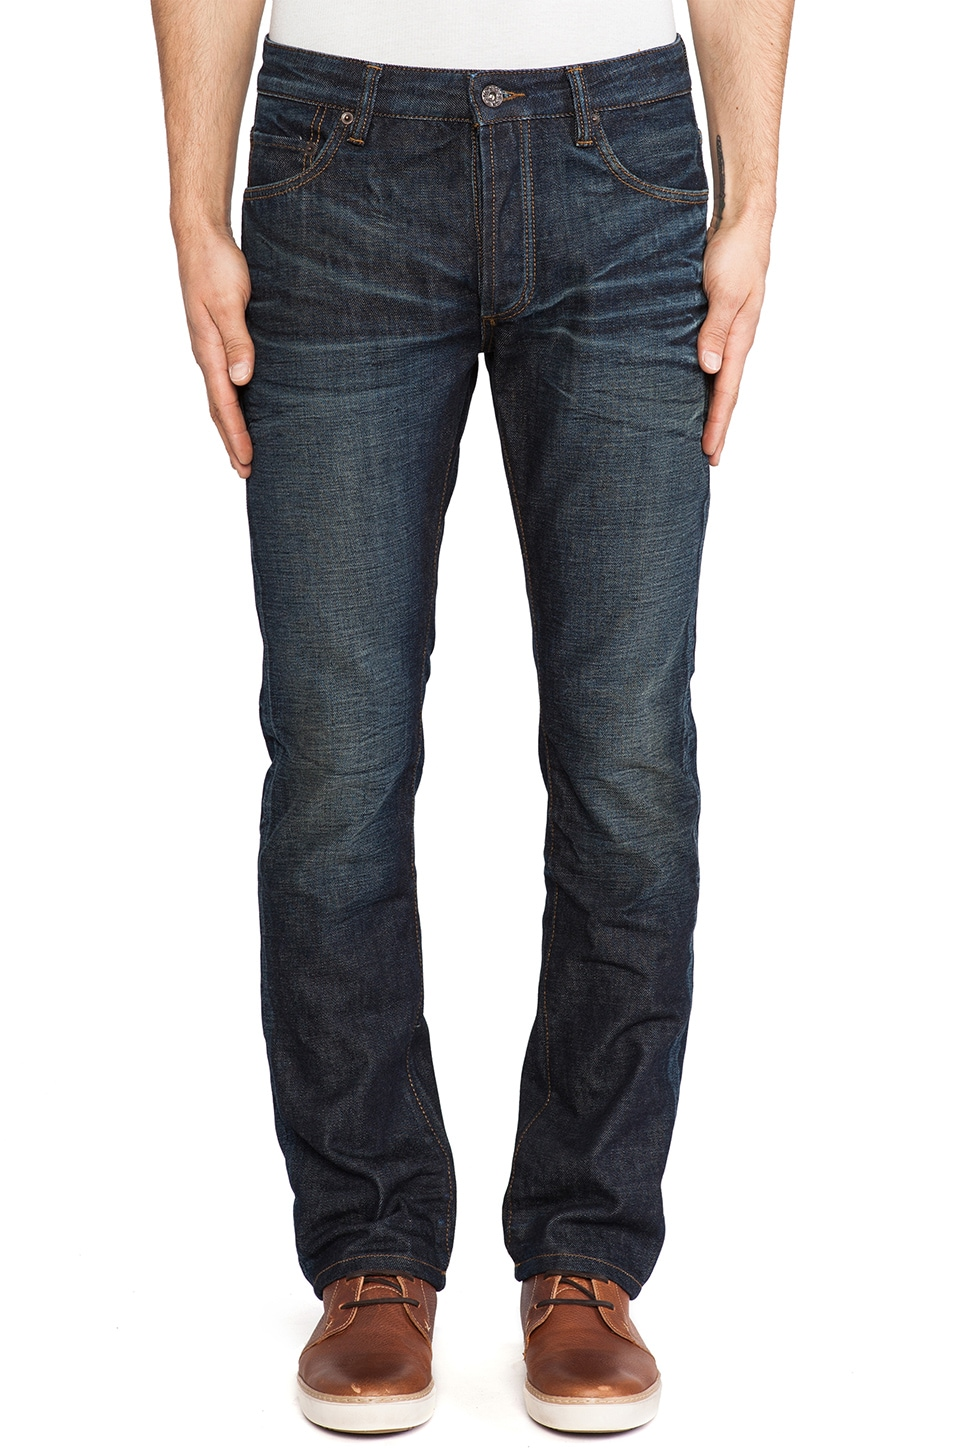 Natural Selection Denim Narrow in Alpha